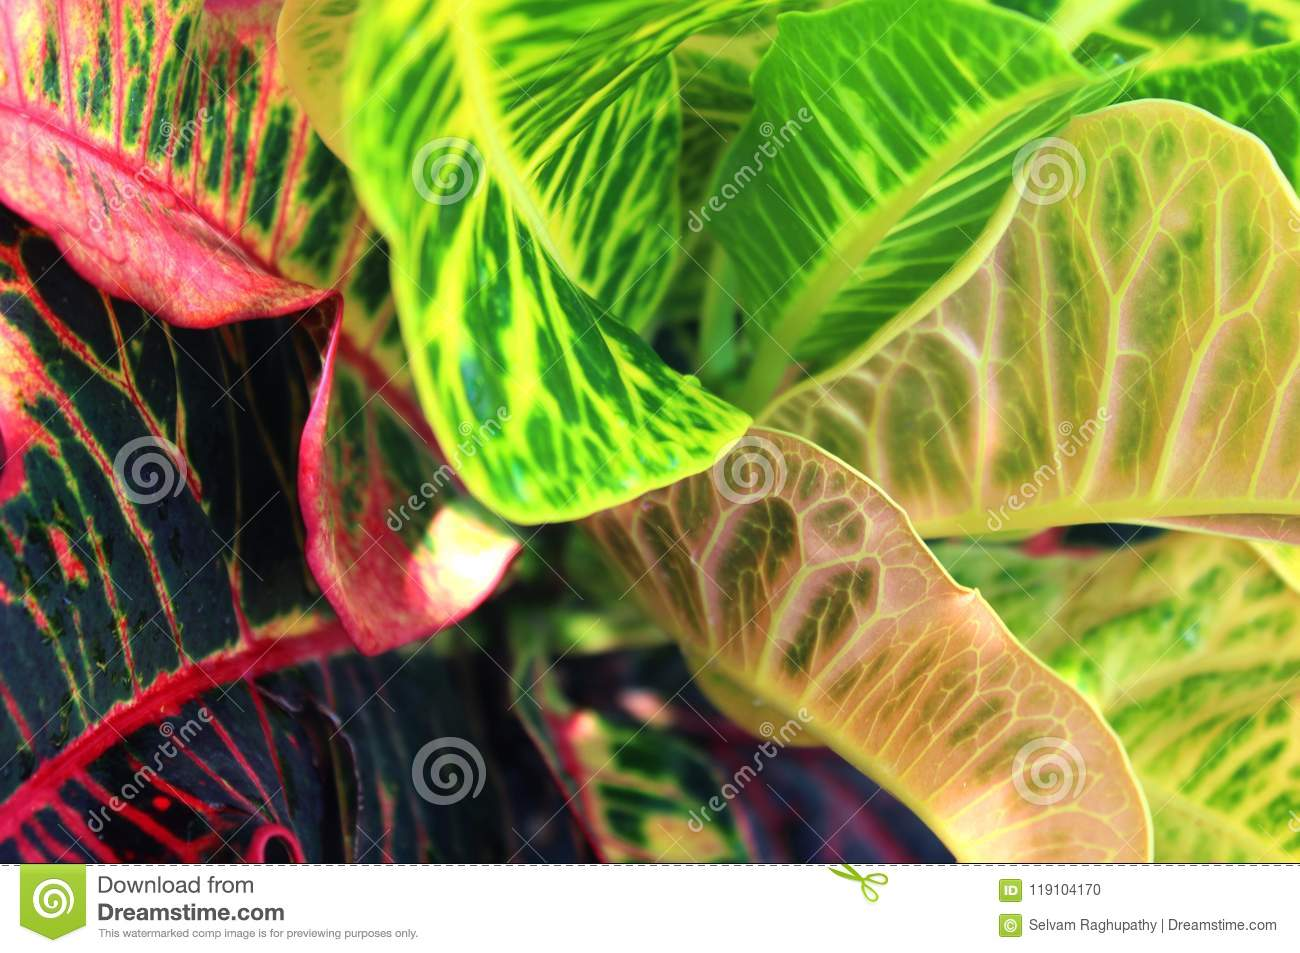 Pink And Green Dieffenbachia Leaves Or Dumb Cane Leaves Background